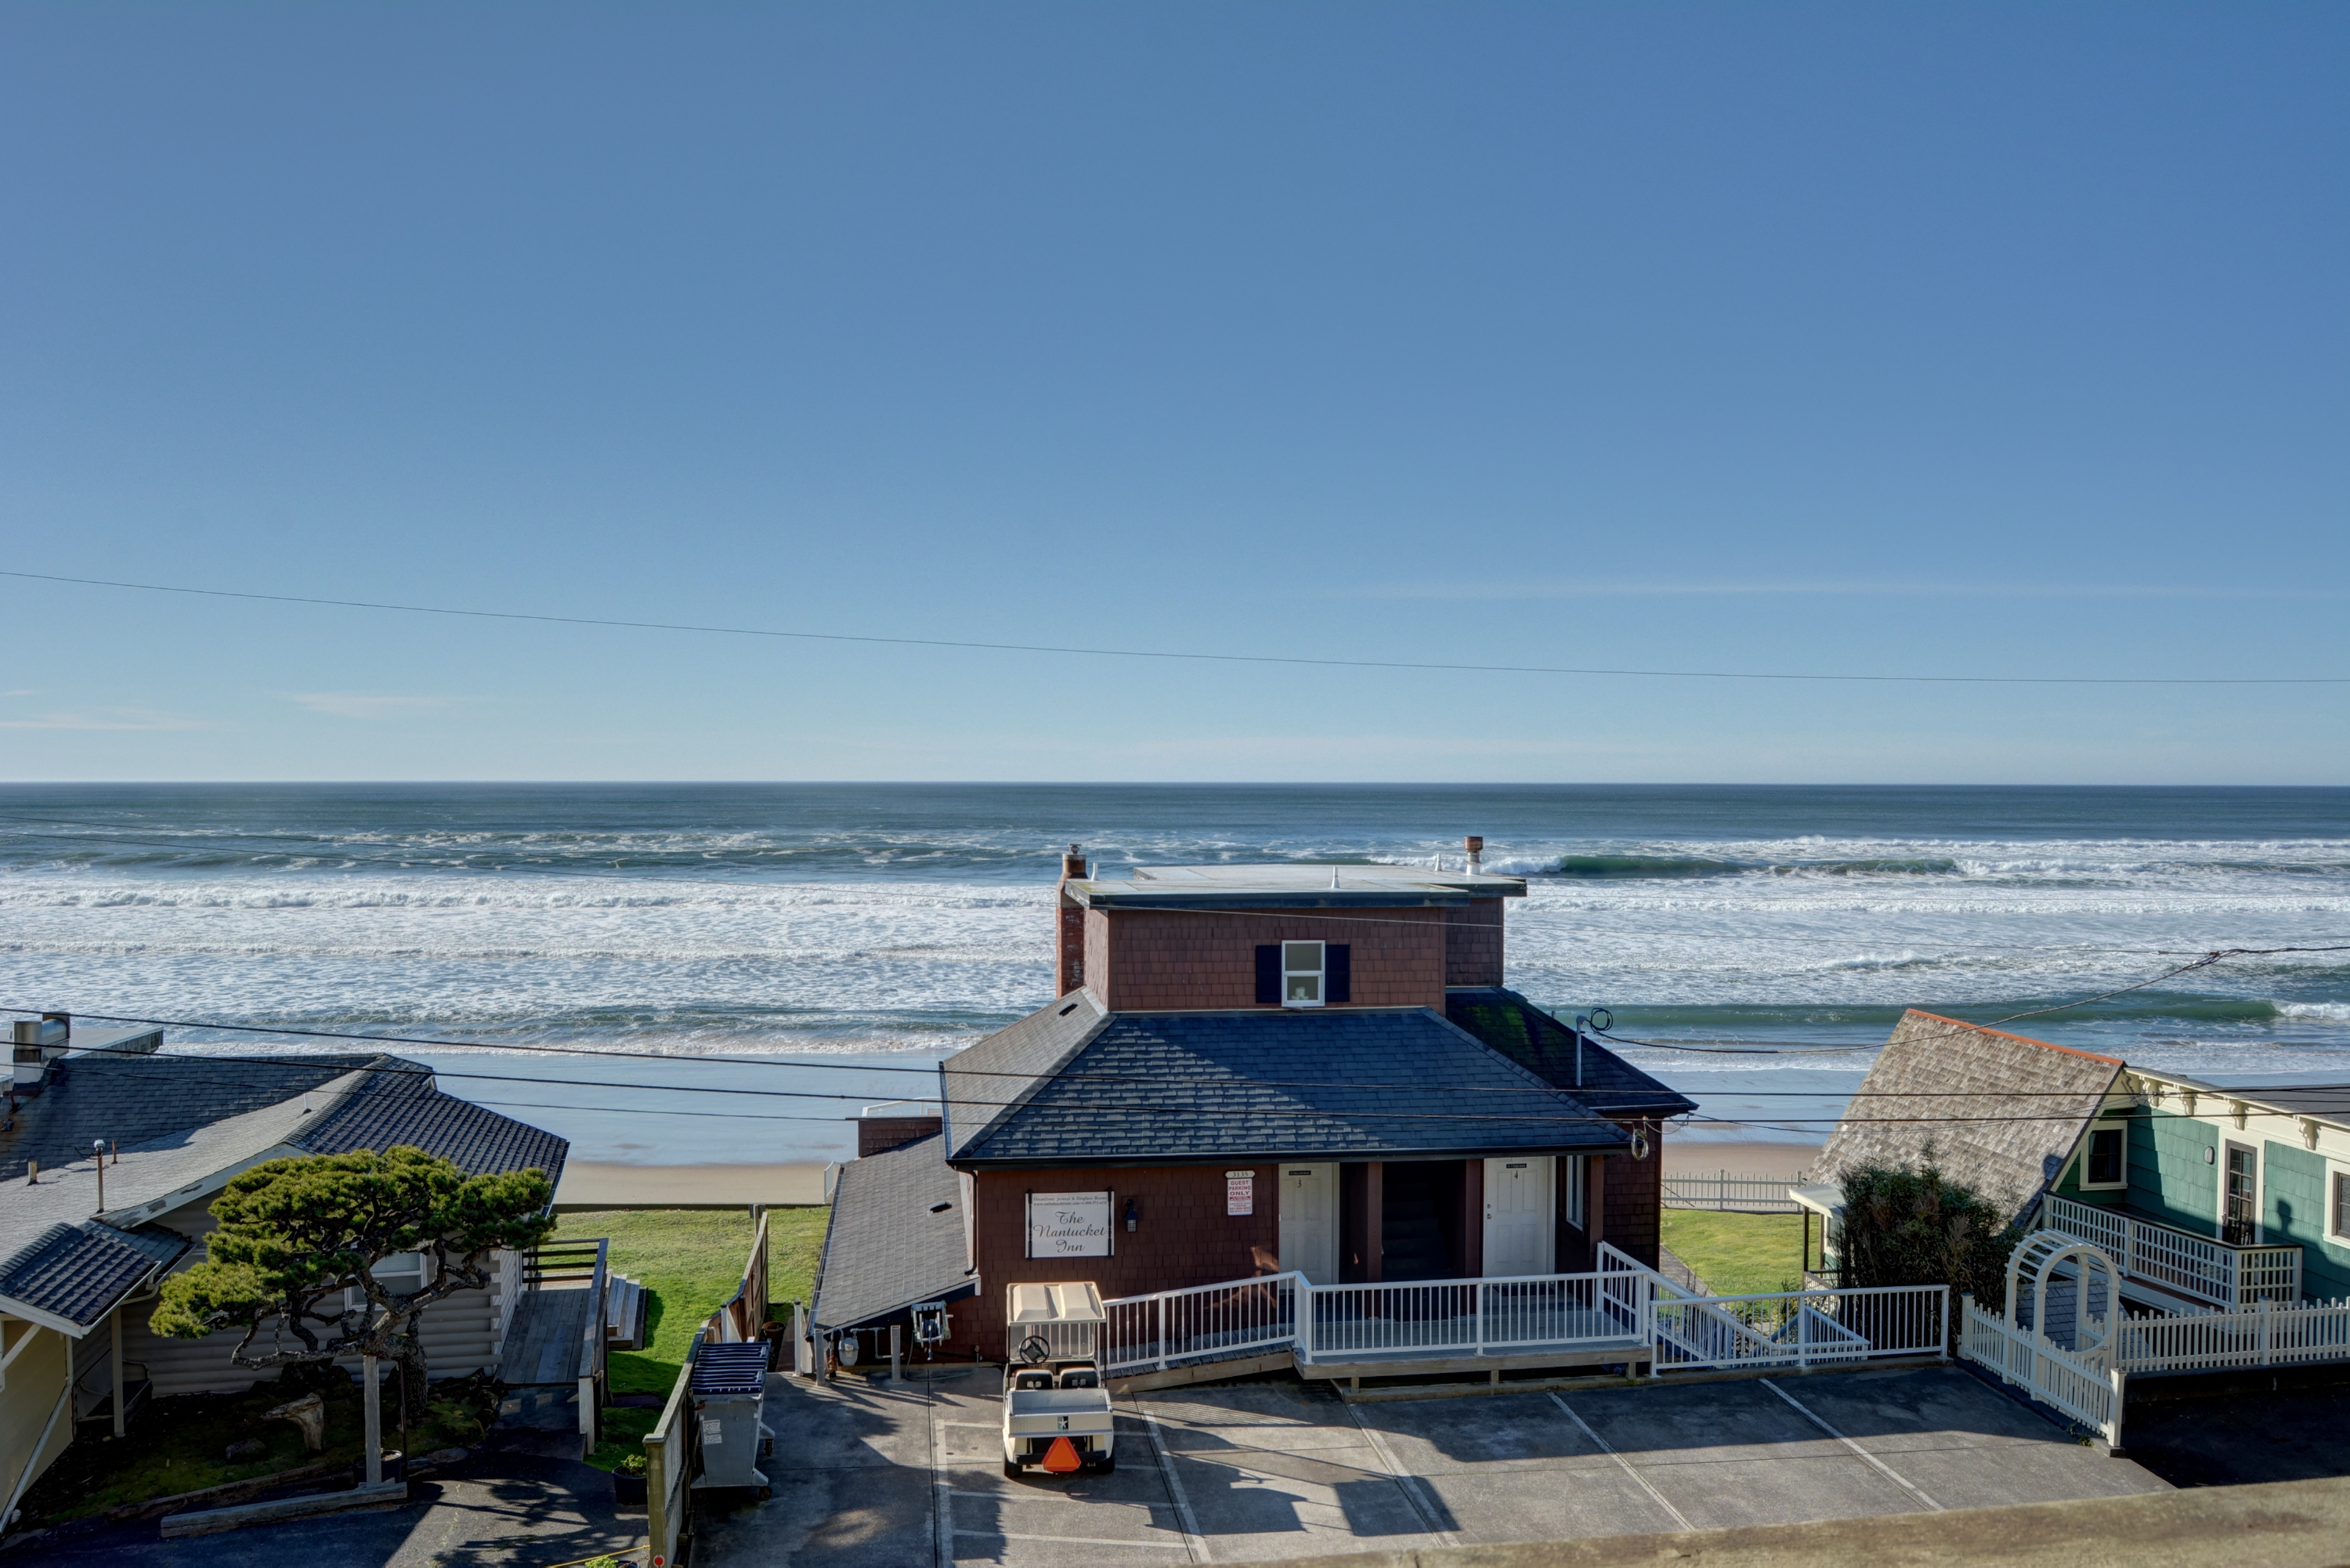 waters oregon lincoln rentals overview vacation review city beach average booking edge